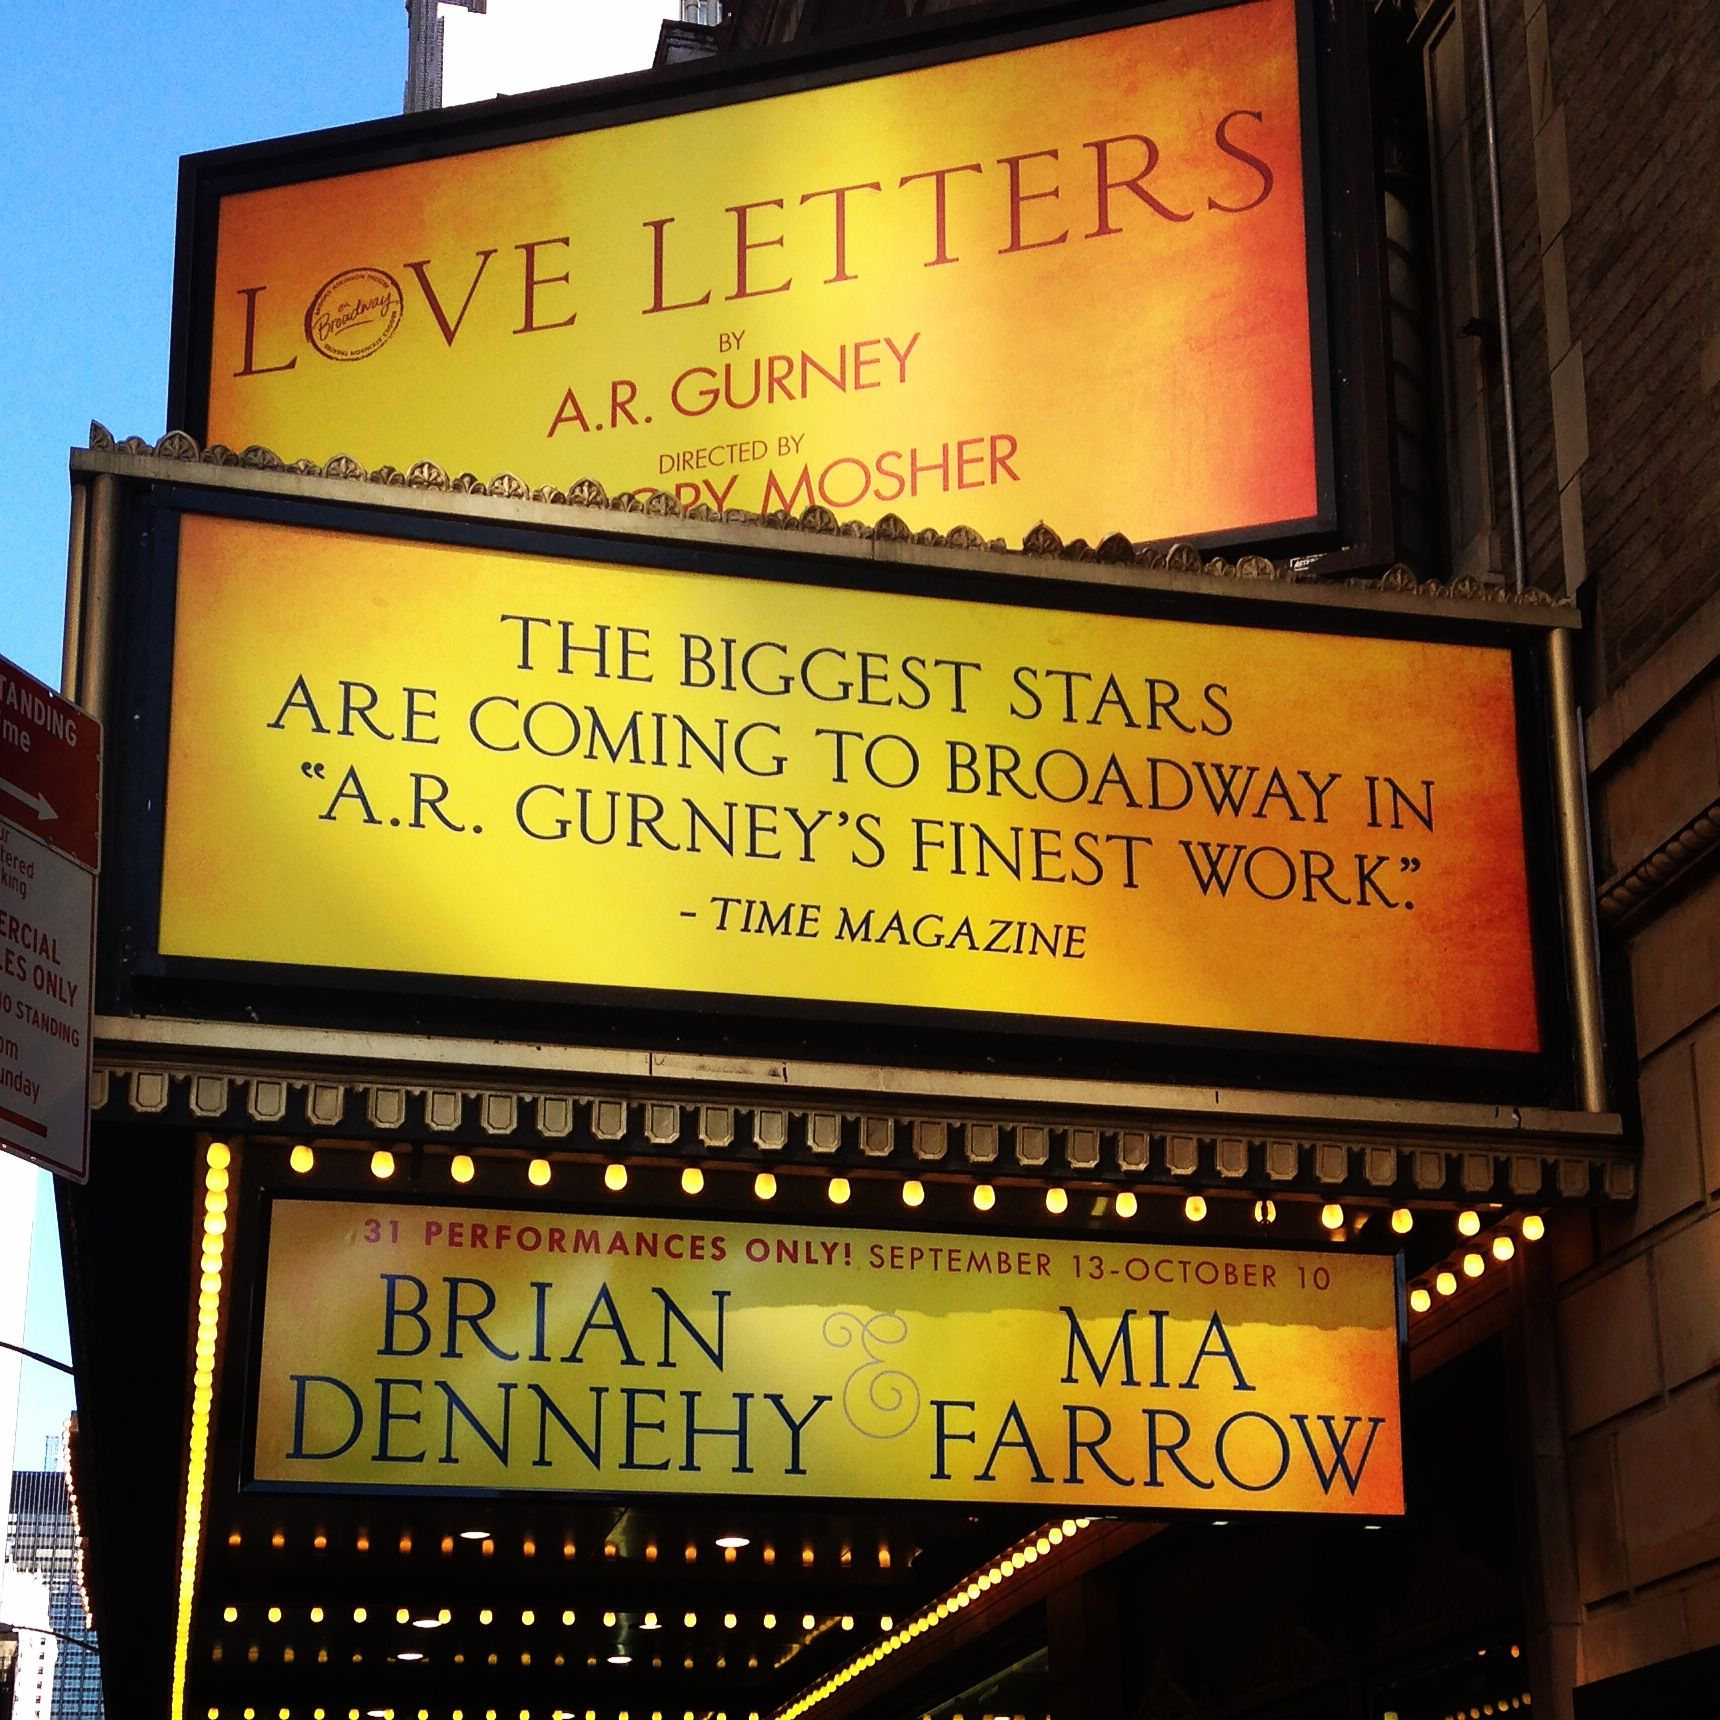 Love Letters by A.R. Gurney starring Brian Dennehy and Mia Farrow at the Brooks Atkinson Theatre on Broadway (Sep 18, 2014 - Dec 14, 2014)